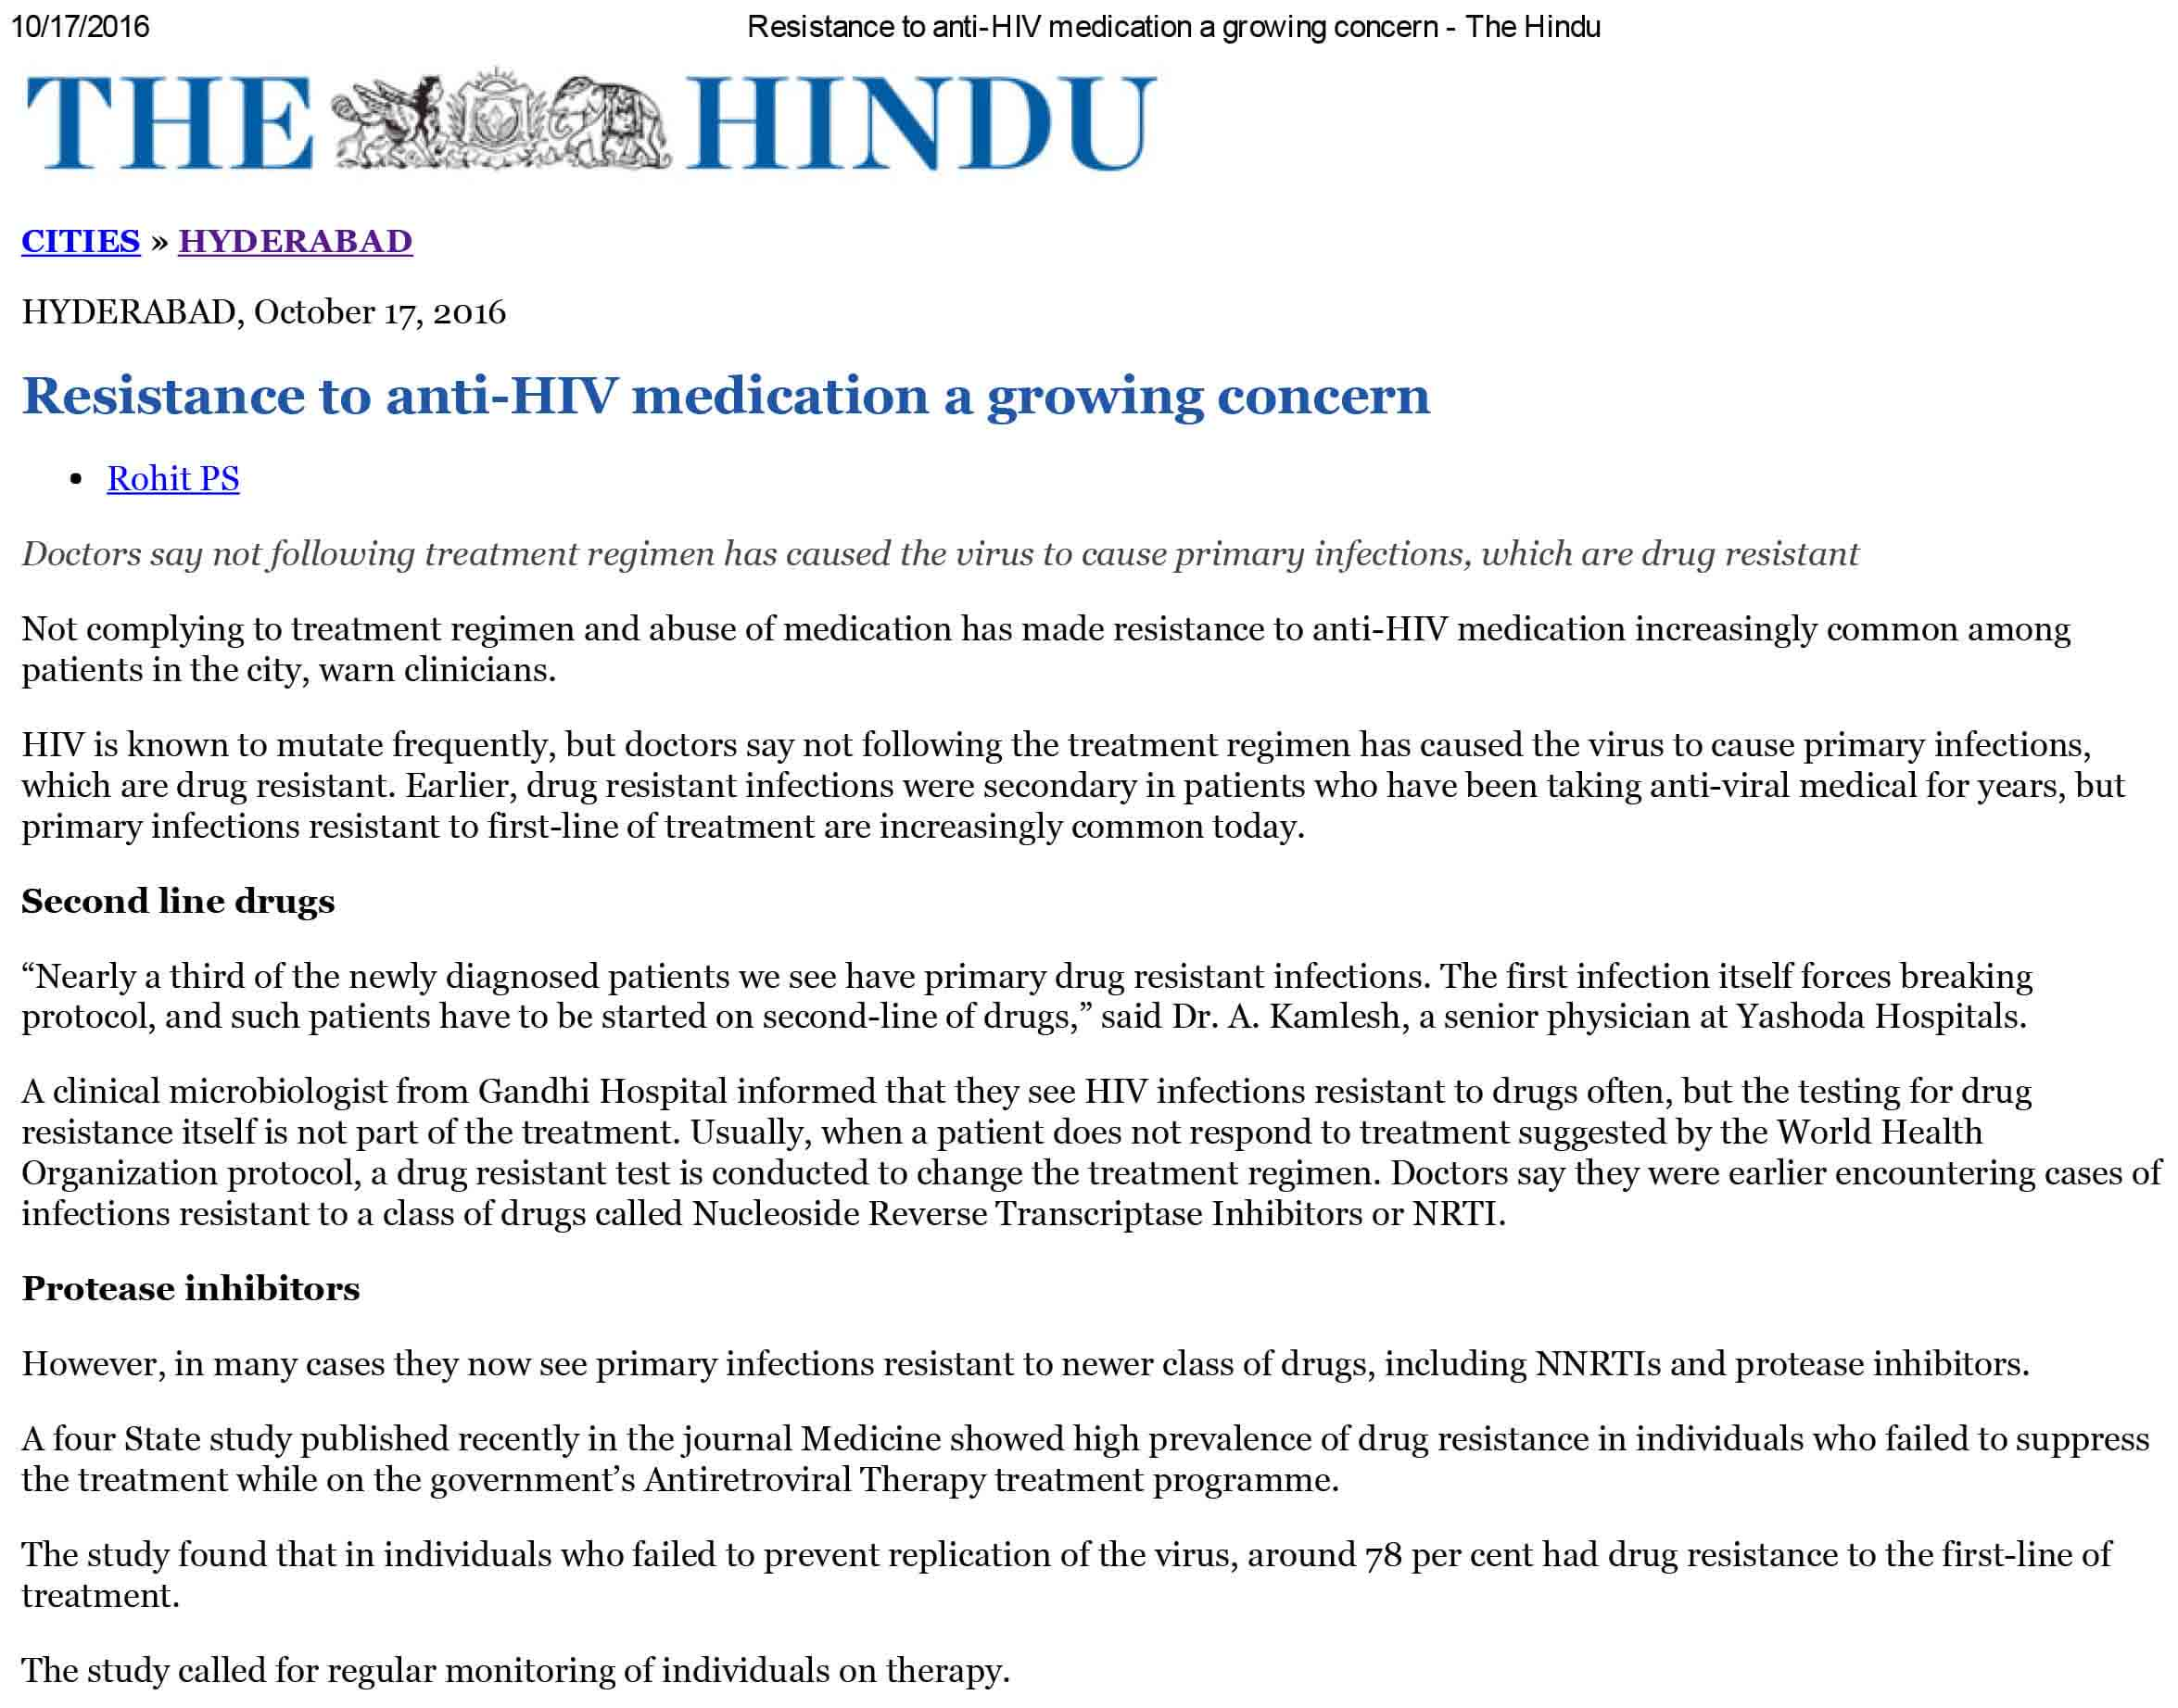 Resistance to anti-HIV medication a growing concern